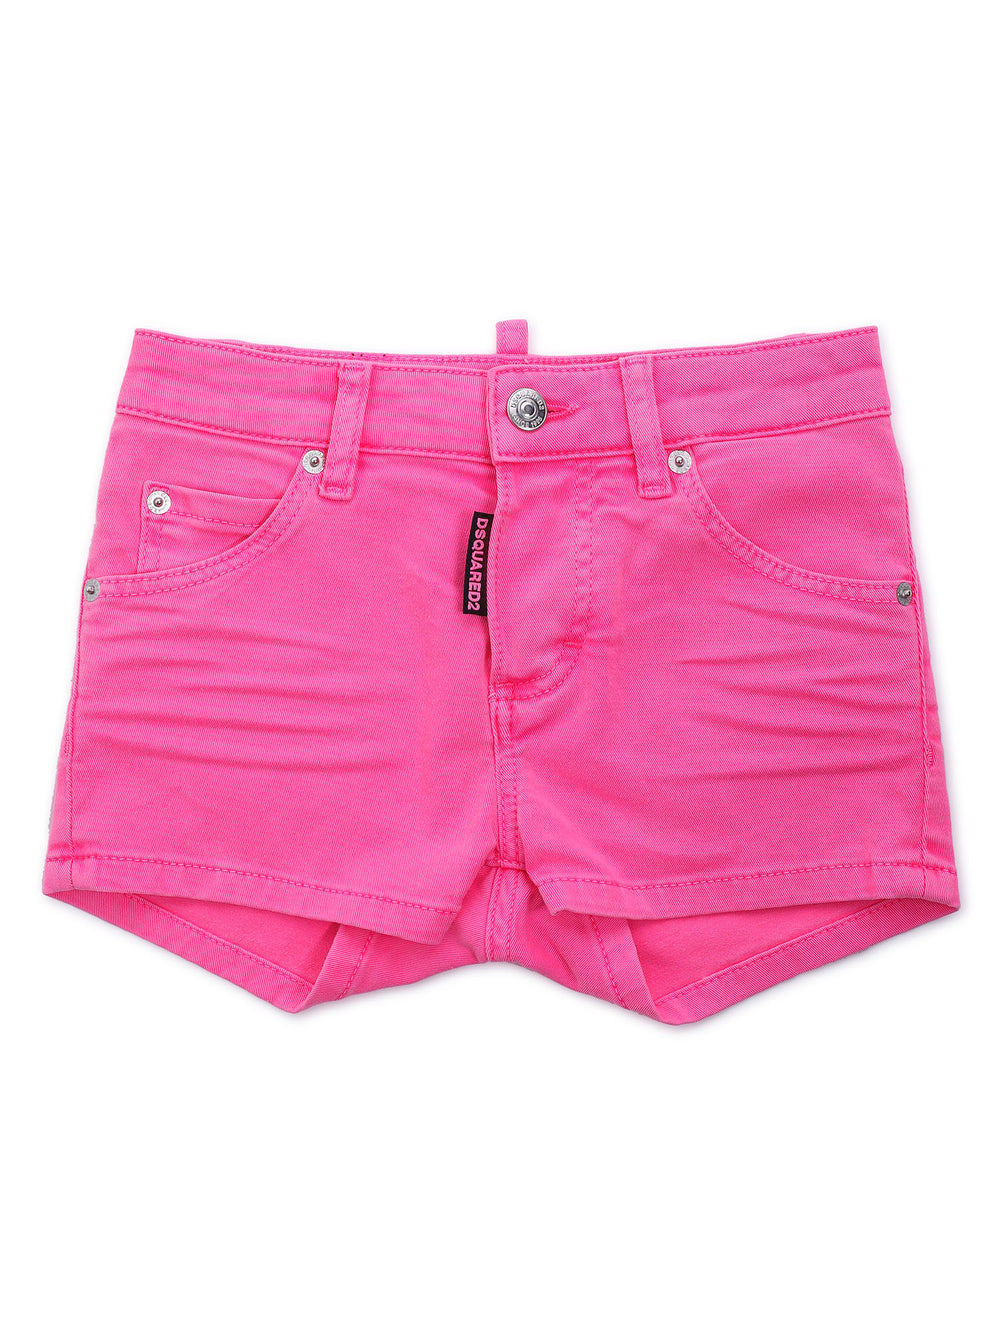 DSQUARED2 KIDS Pink Shorts